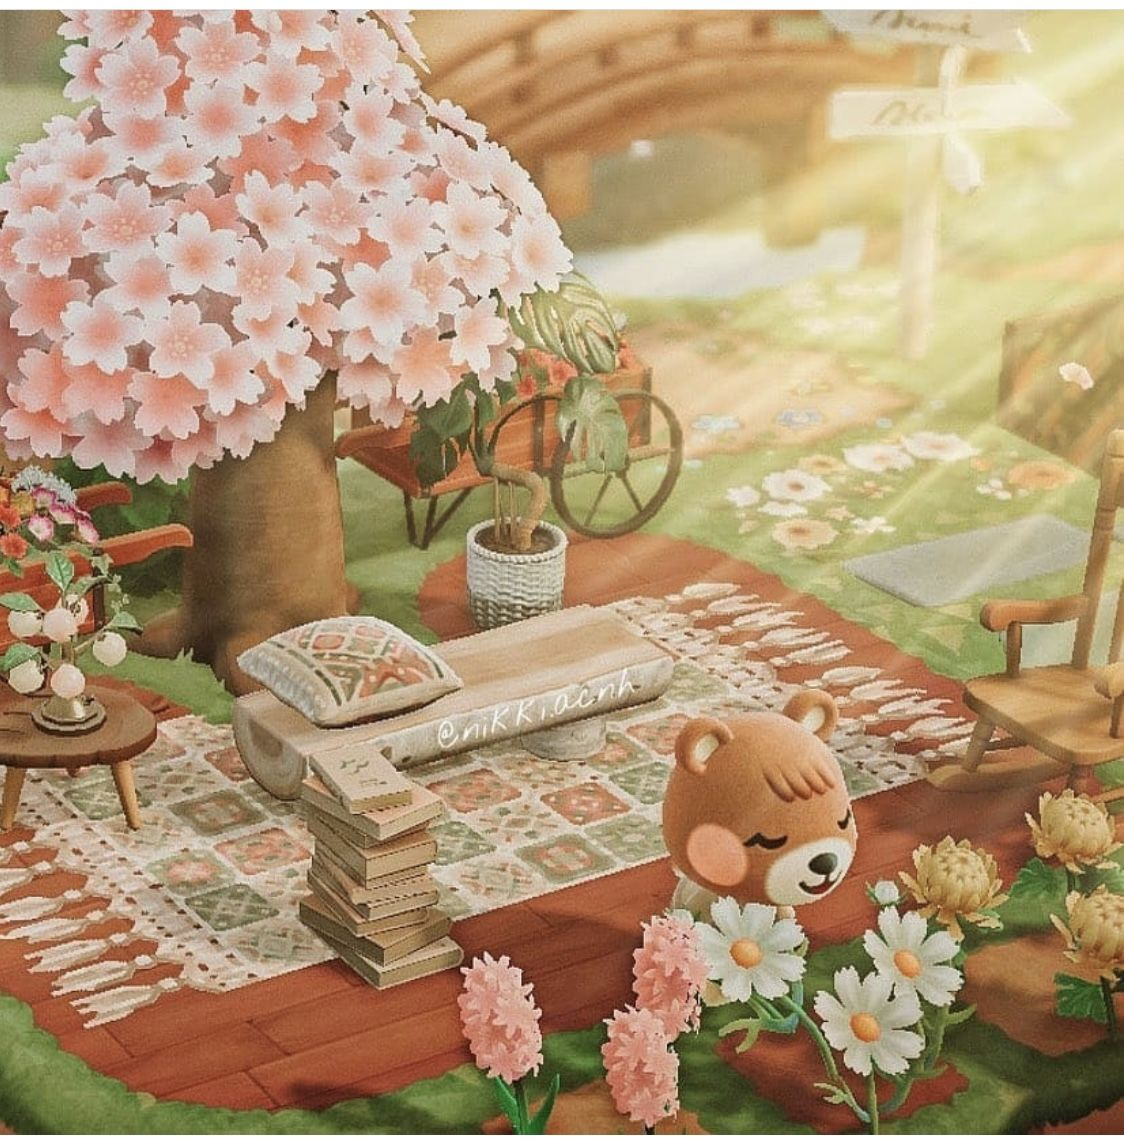 Pin By Alaina On Acnh In 2021 Animal Crossing Animals Cherry Blossom Season